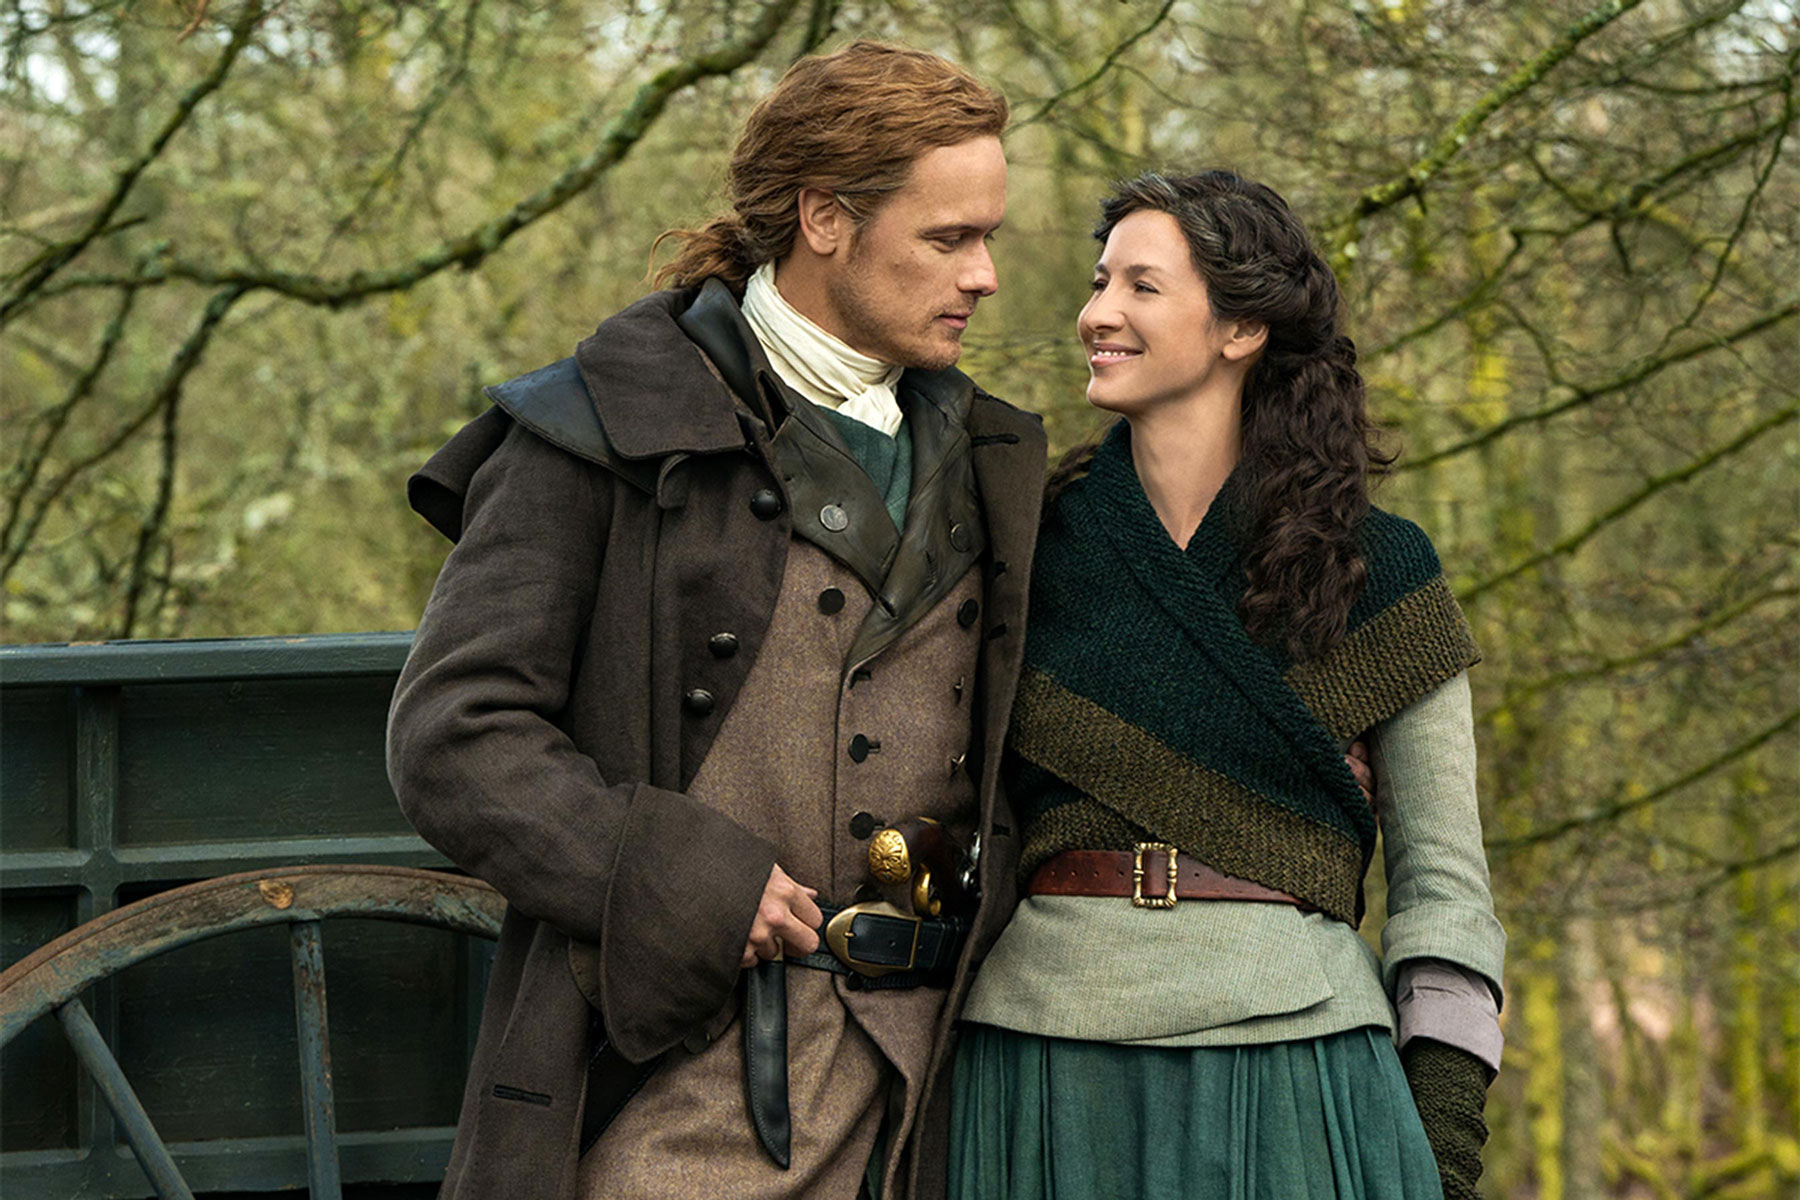 What to watch: Shows and movies to watch on Netflix, Hulu, Amazon Prime, HBO and More (Outlander on Starz)